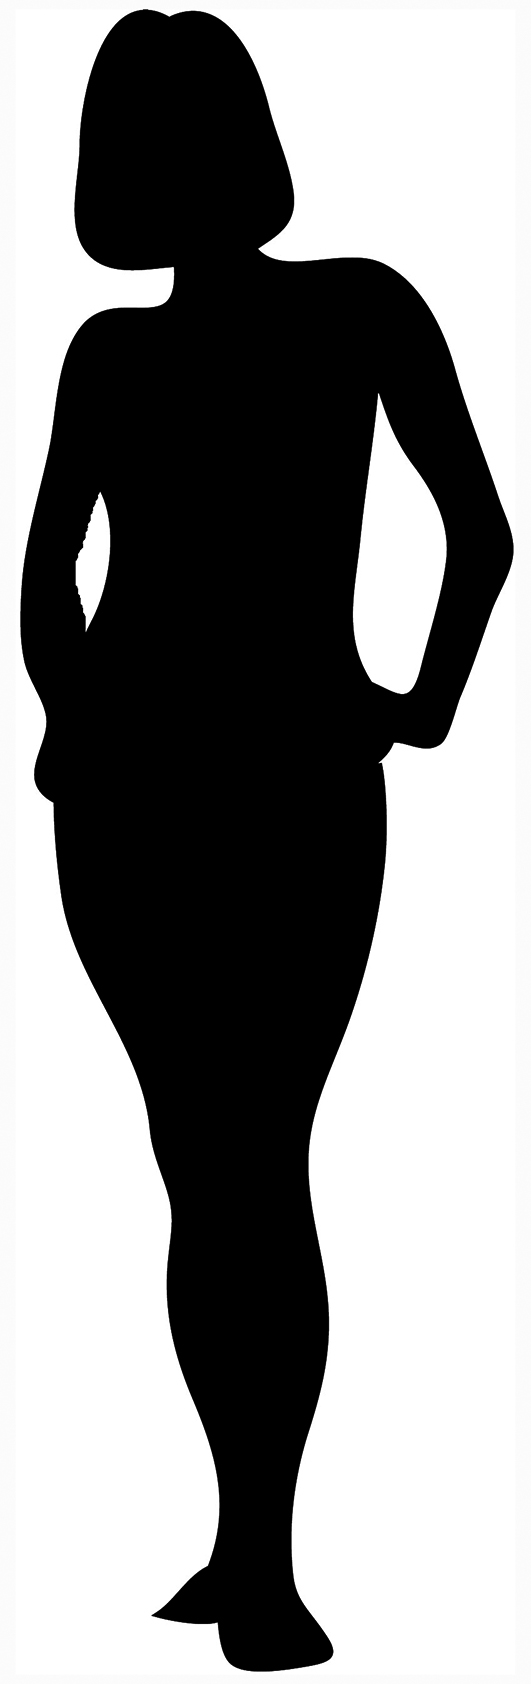 531x1684 Free Outline Of A Woman, Hanslodge Clip Art Collection